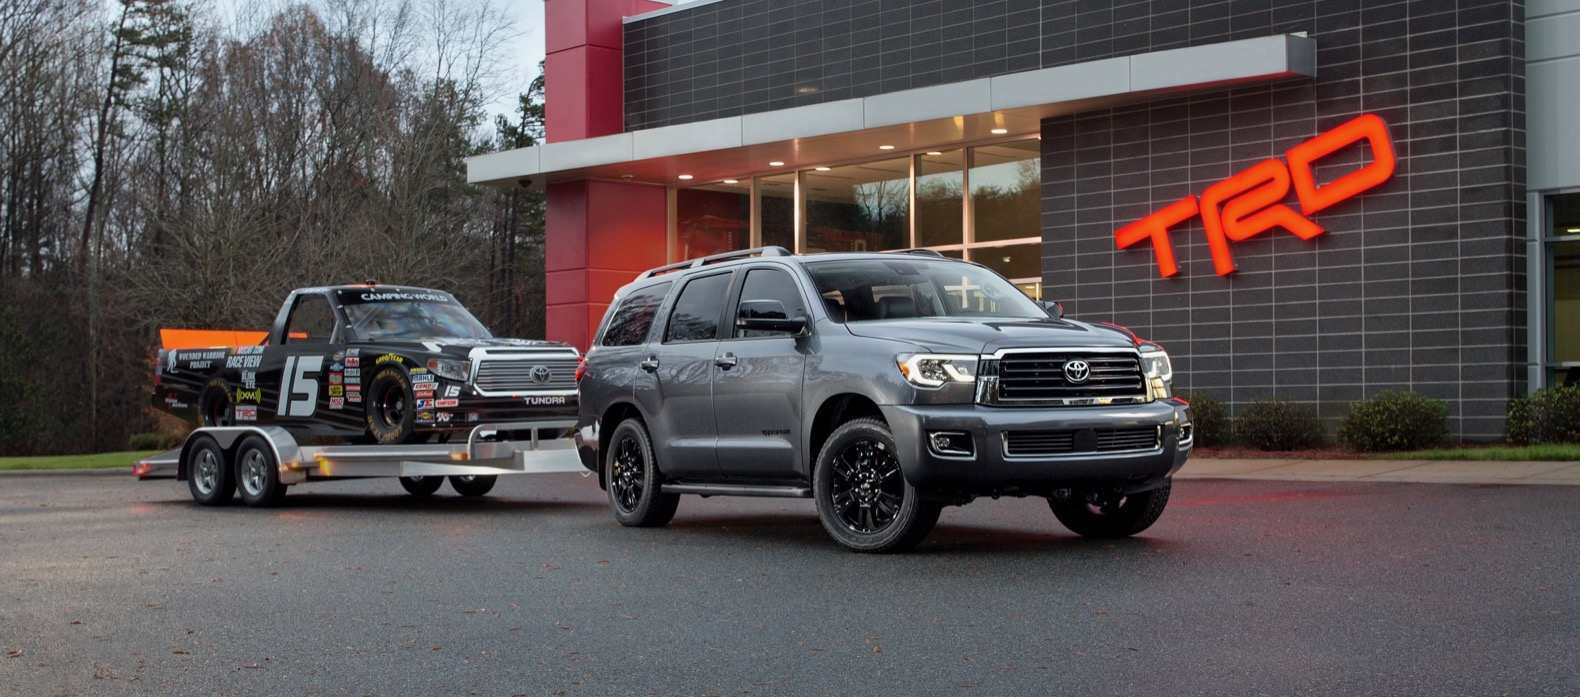 71 Great 2019 Toyota Sequoia Review Style with 2019 Toyota Sequoia Review